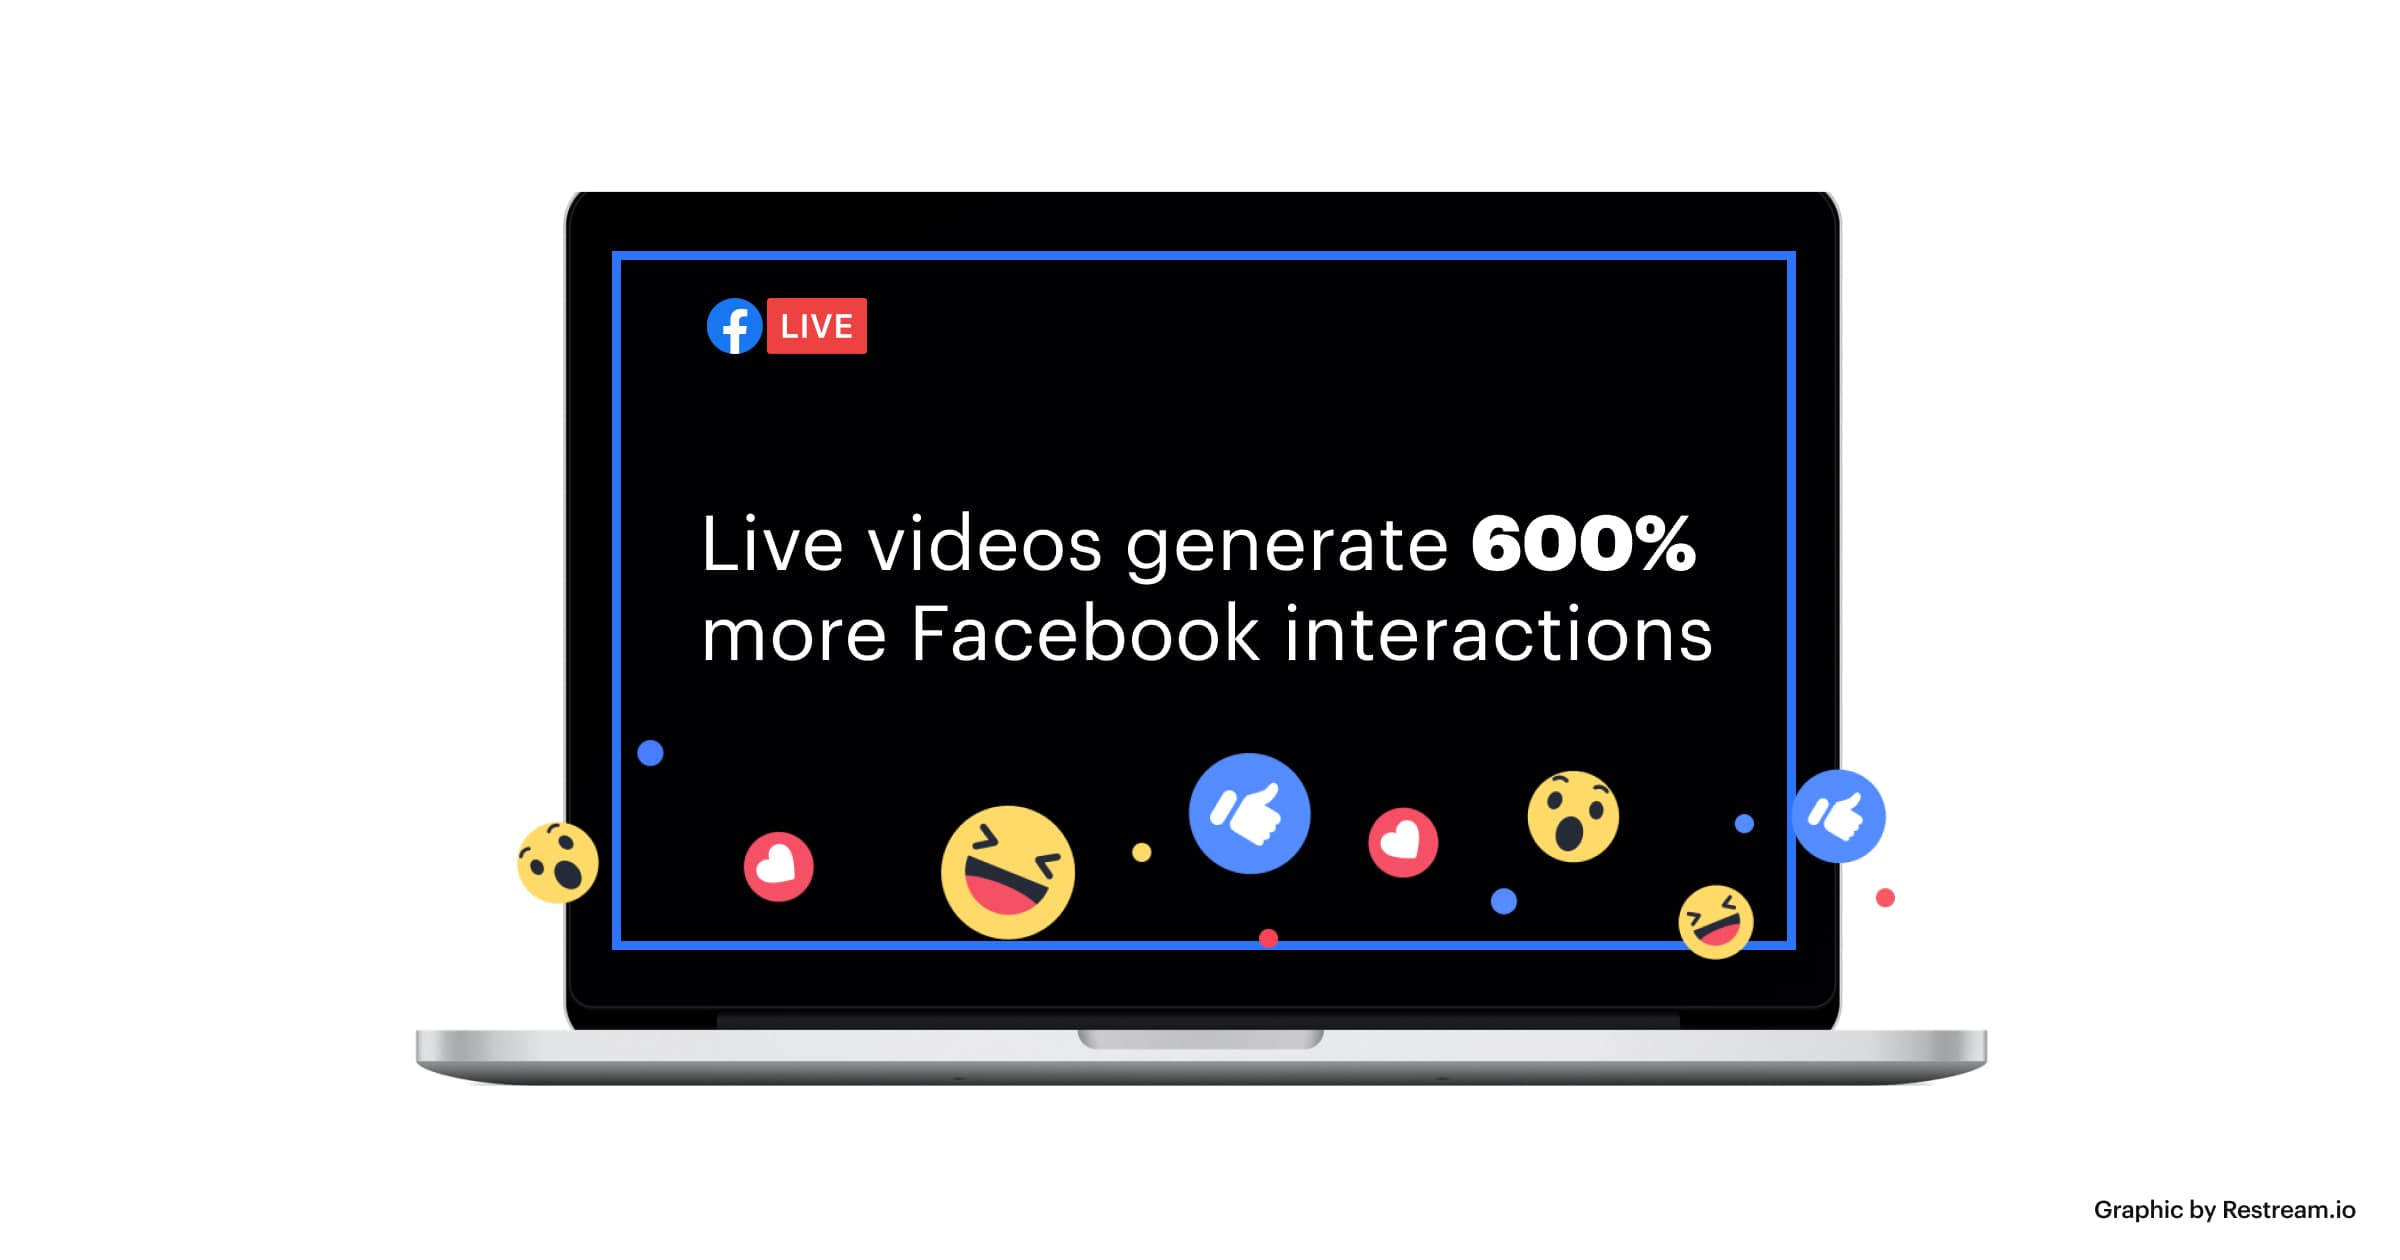 Live videos generate 600% more Facebook interactions